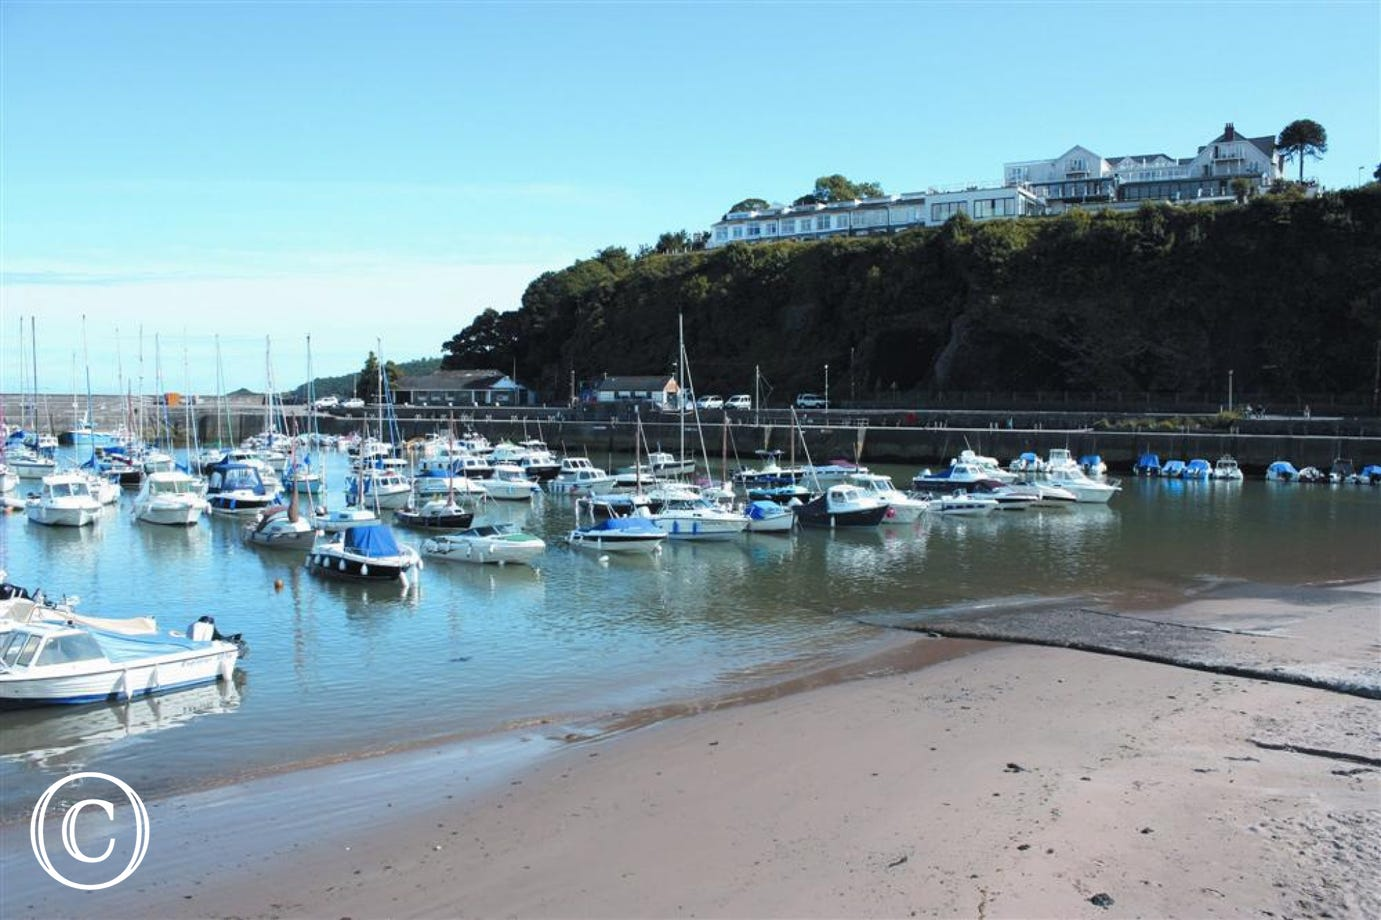 Boats in the harbour at Saundersfoot.